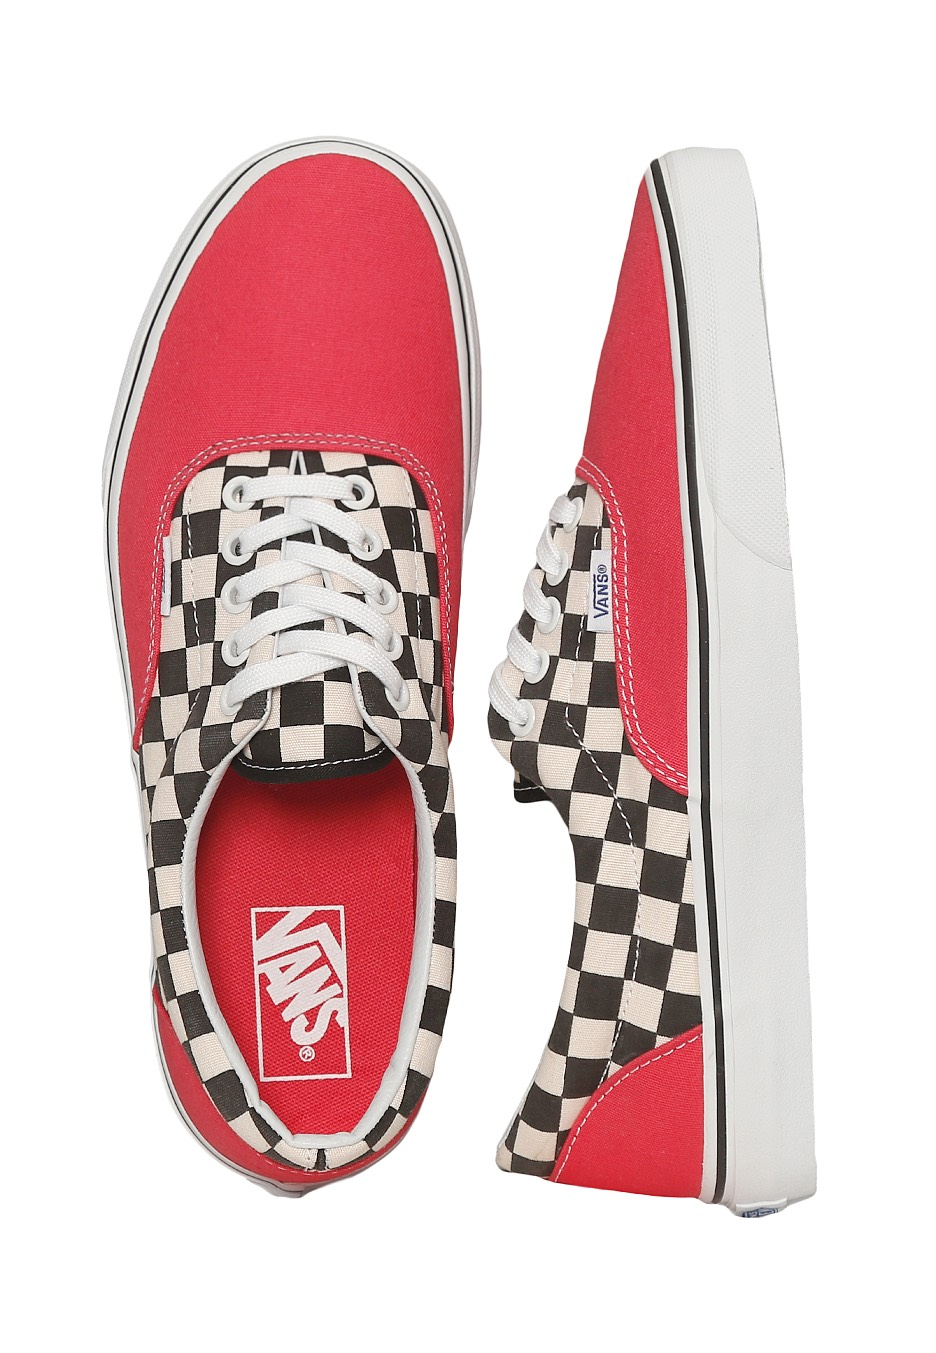 Vans - Era 2-Tone Check Rouge Red True White - Shoes - Impericon.com UK 057c5eac6